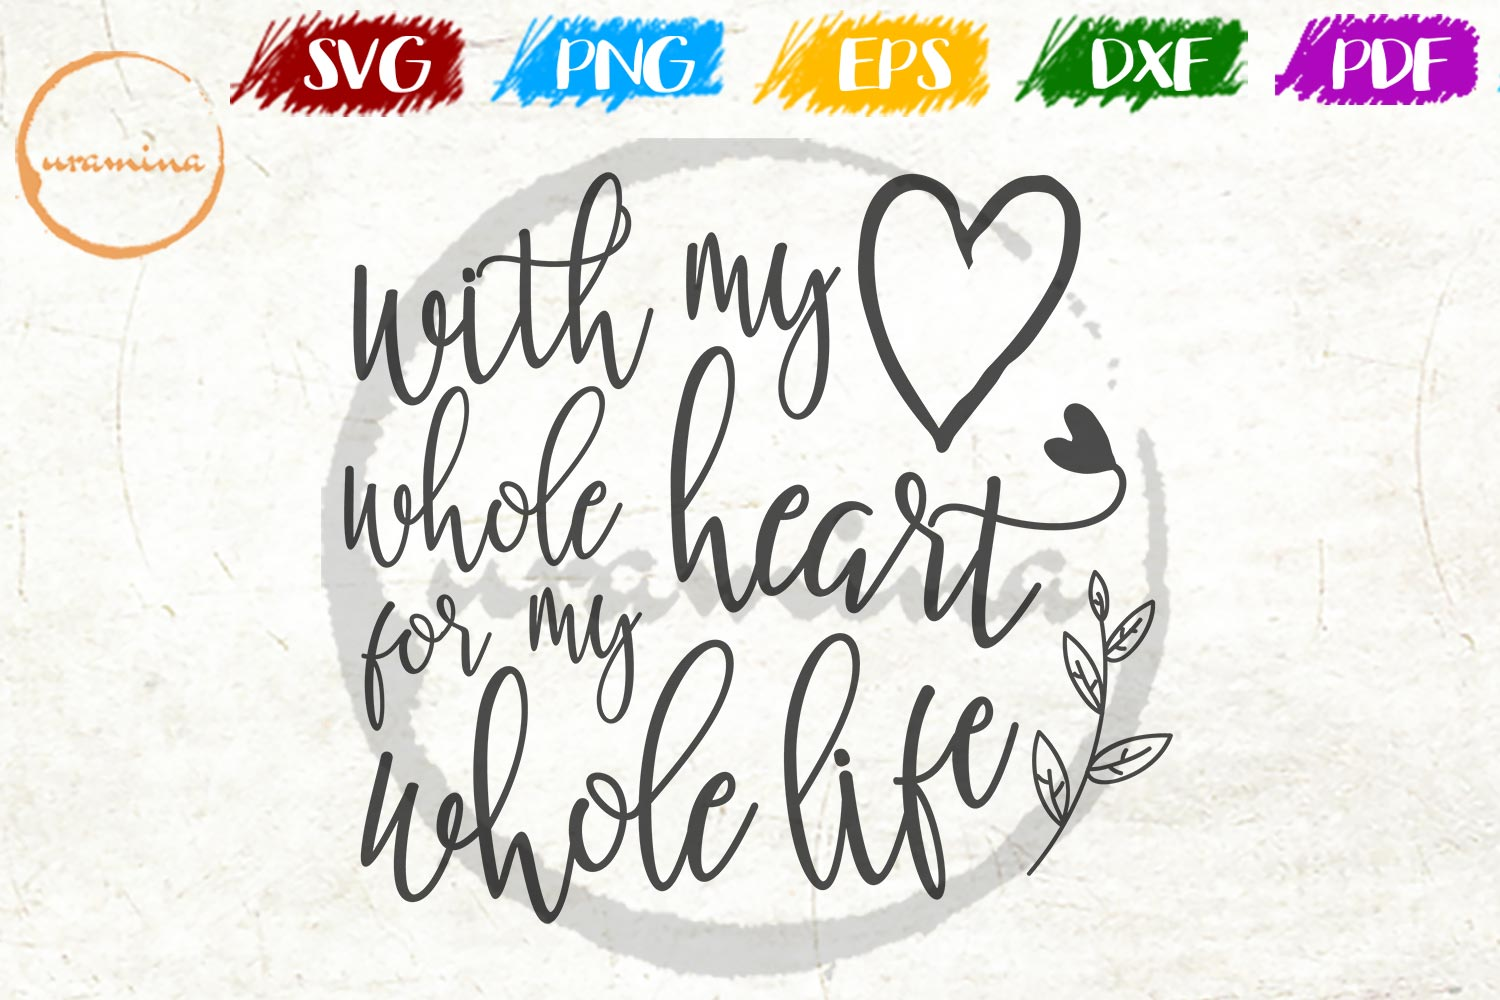 With My Whole Heart For My Whole Life Graphic By Uramina Creative Fabrica